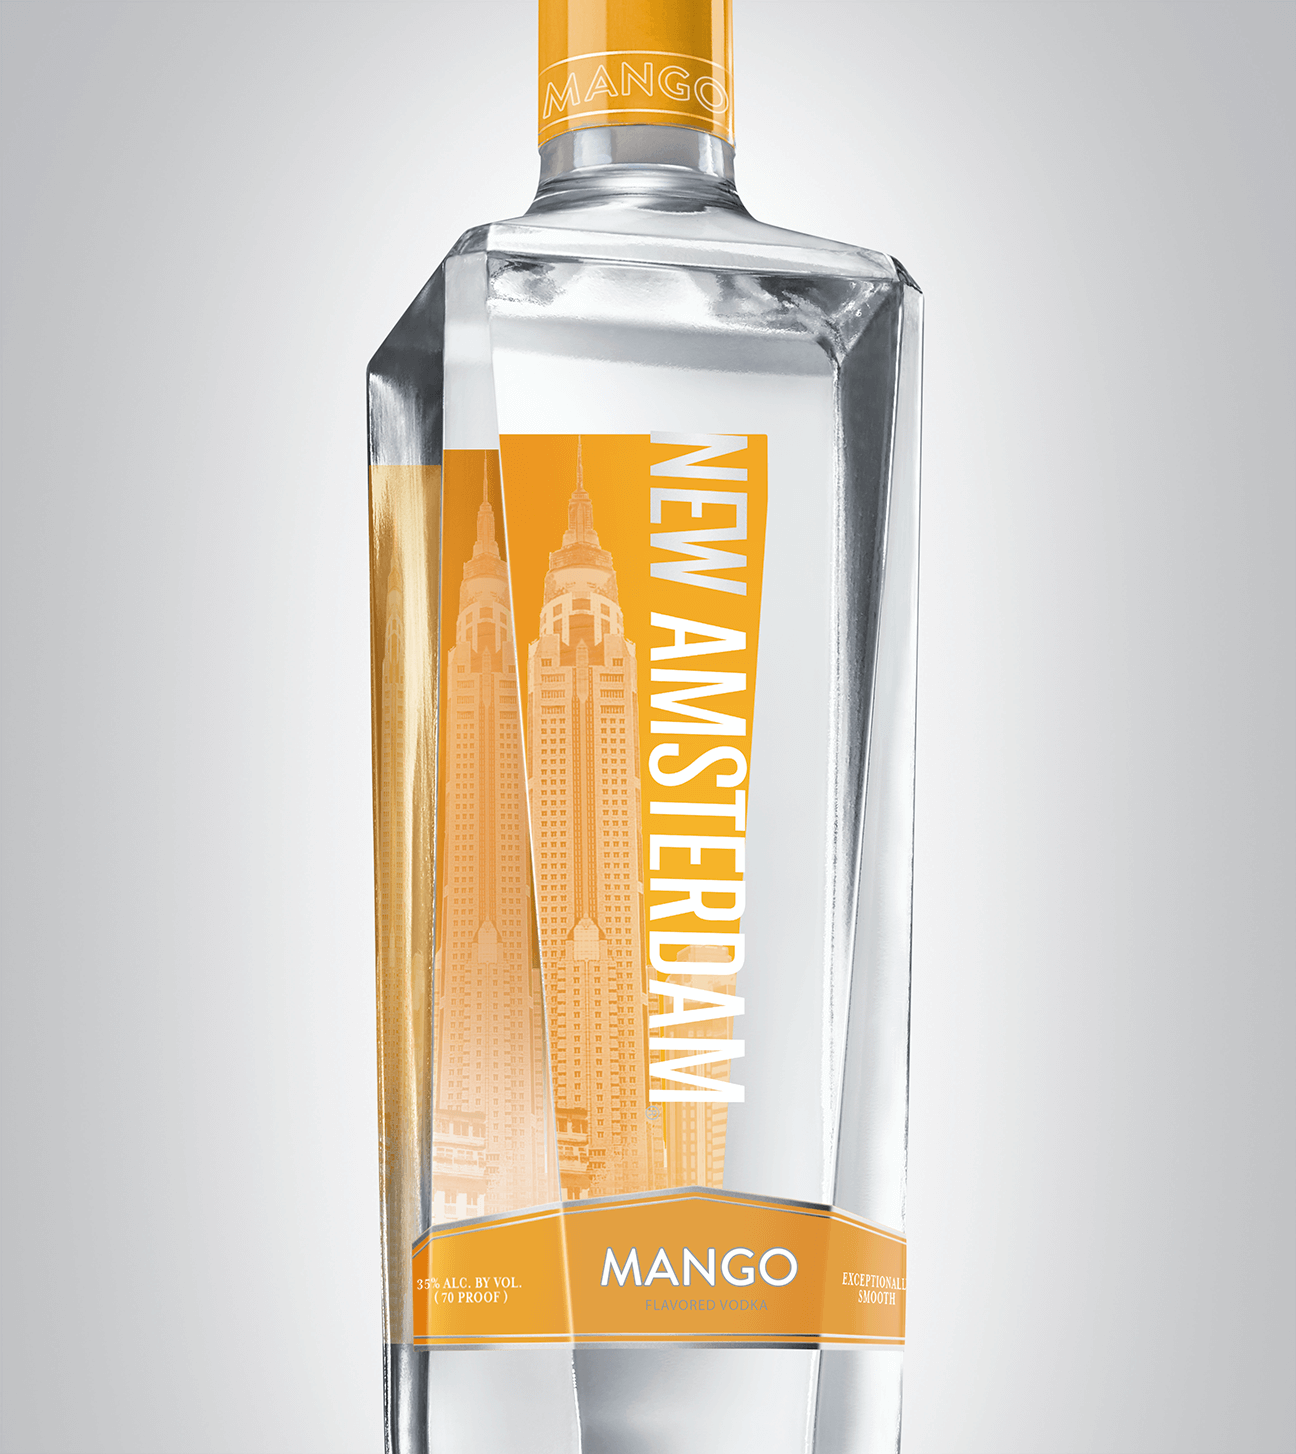 Bottle of New Amsterdam Mango